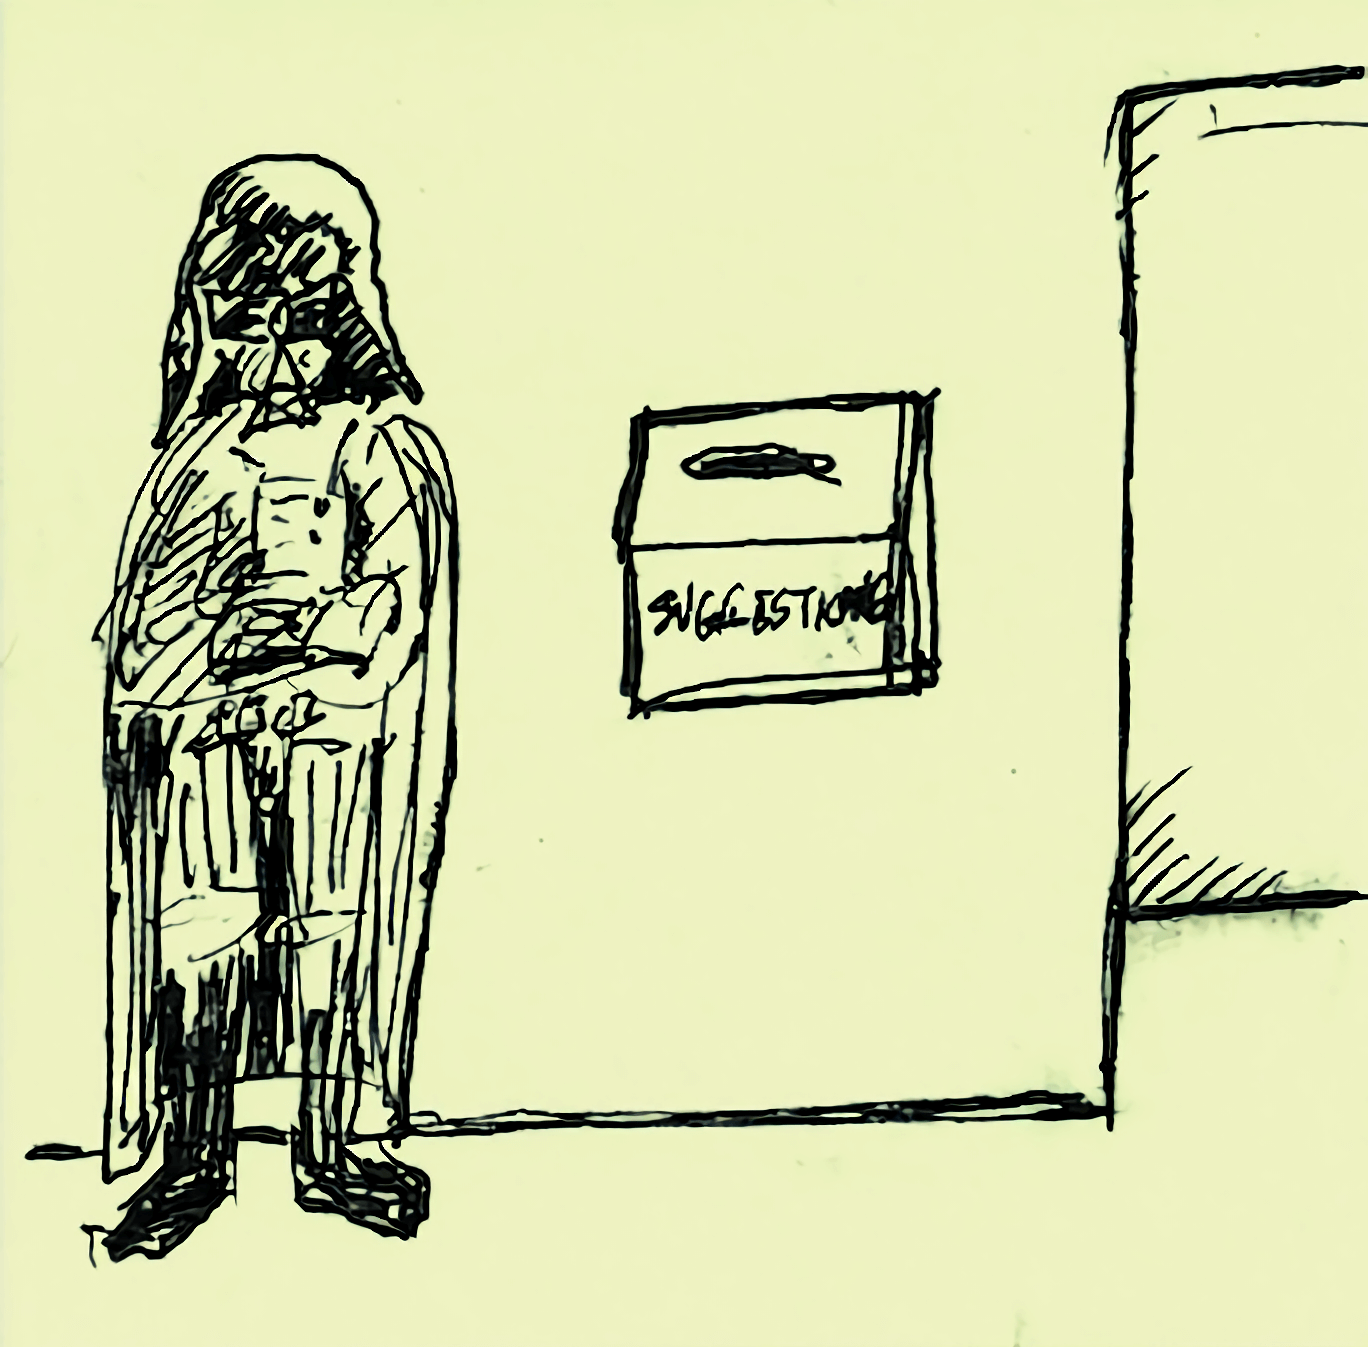 A drawing of Darth Vader standing by a suggestion box.